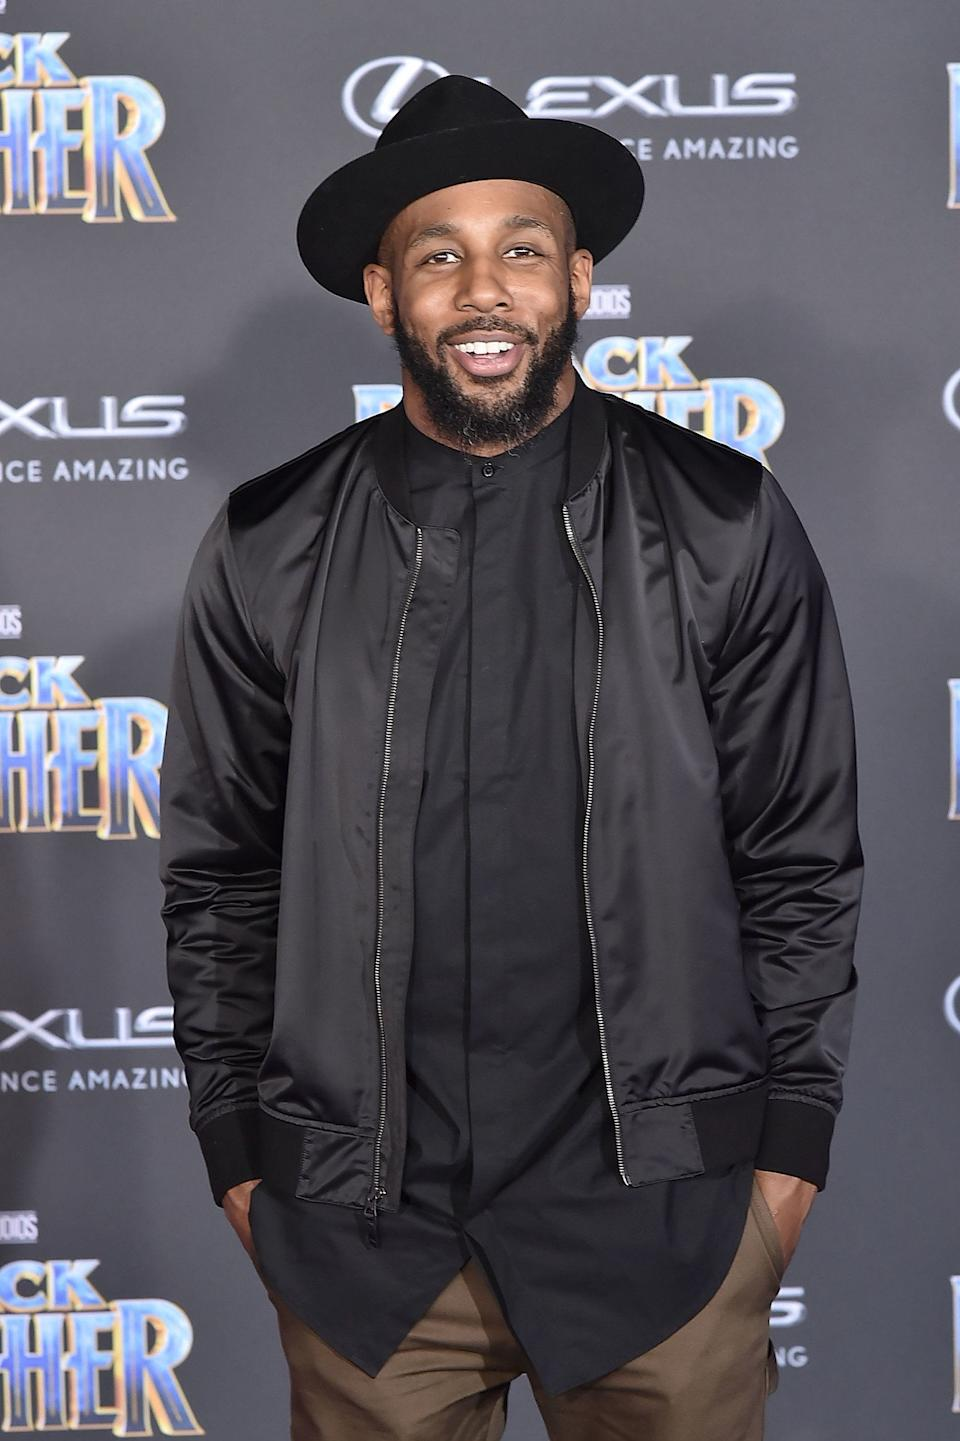 <strong>Stephen tWitch Boss</strong>